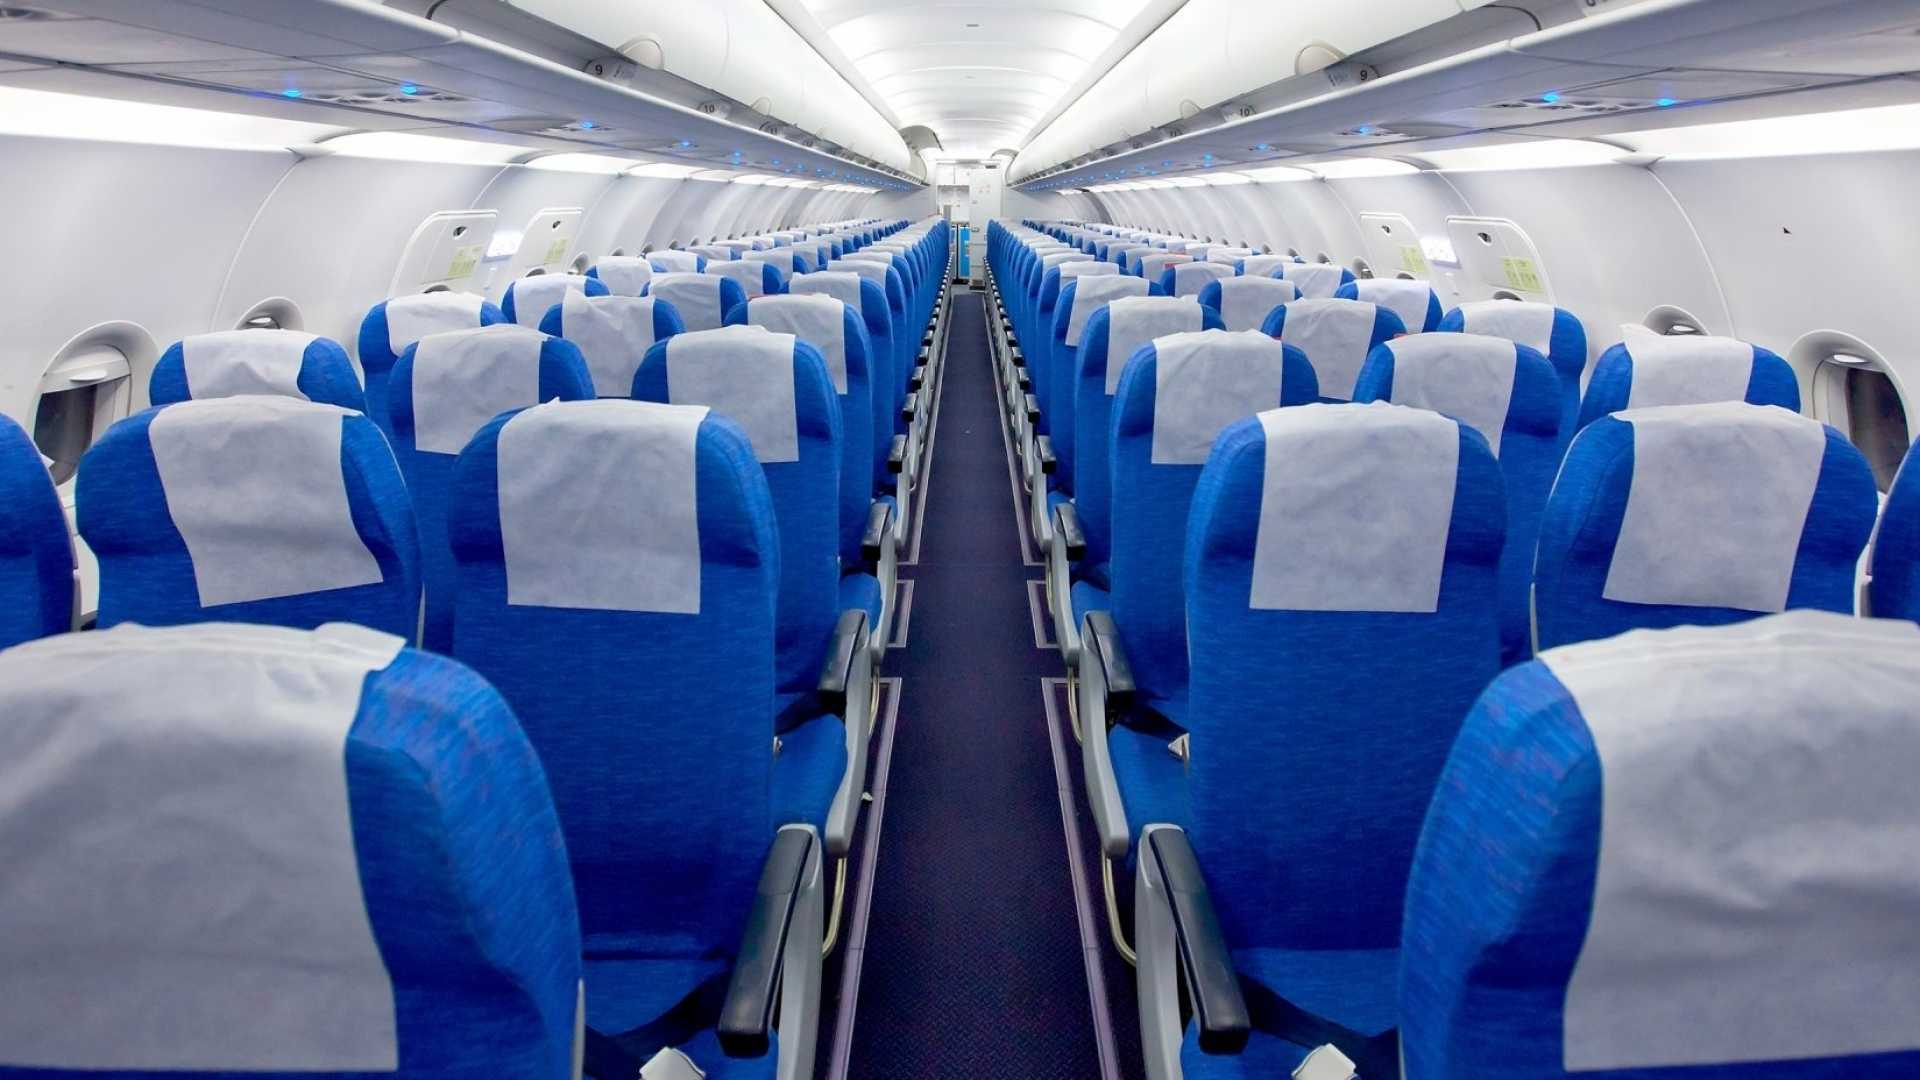 Airplane Air Makes People Really Sick Over Time, According to 2 New Scientific Studies